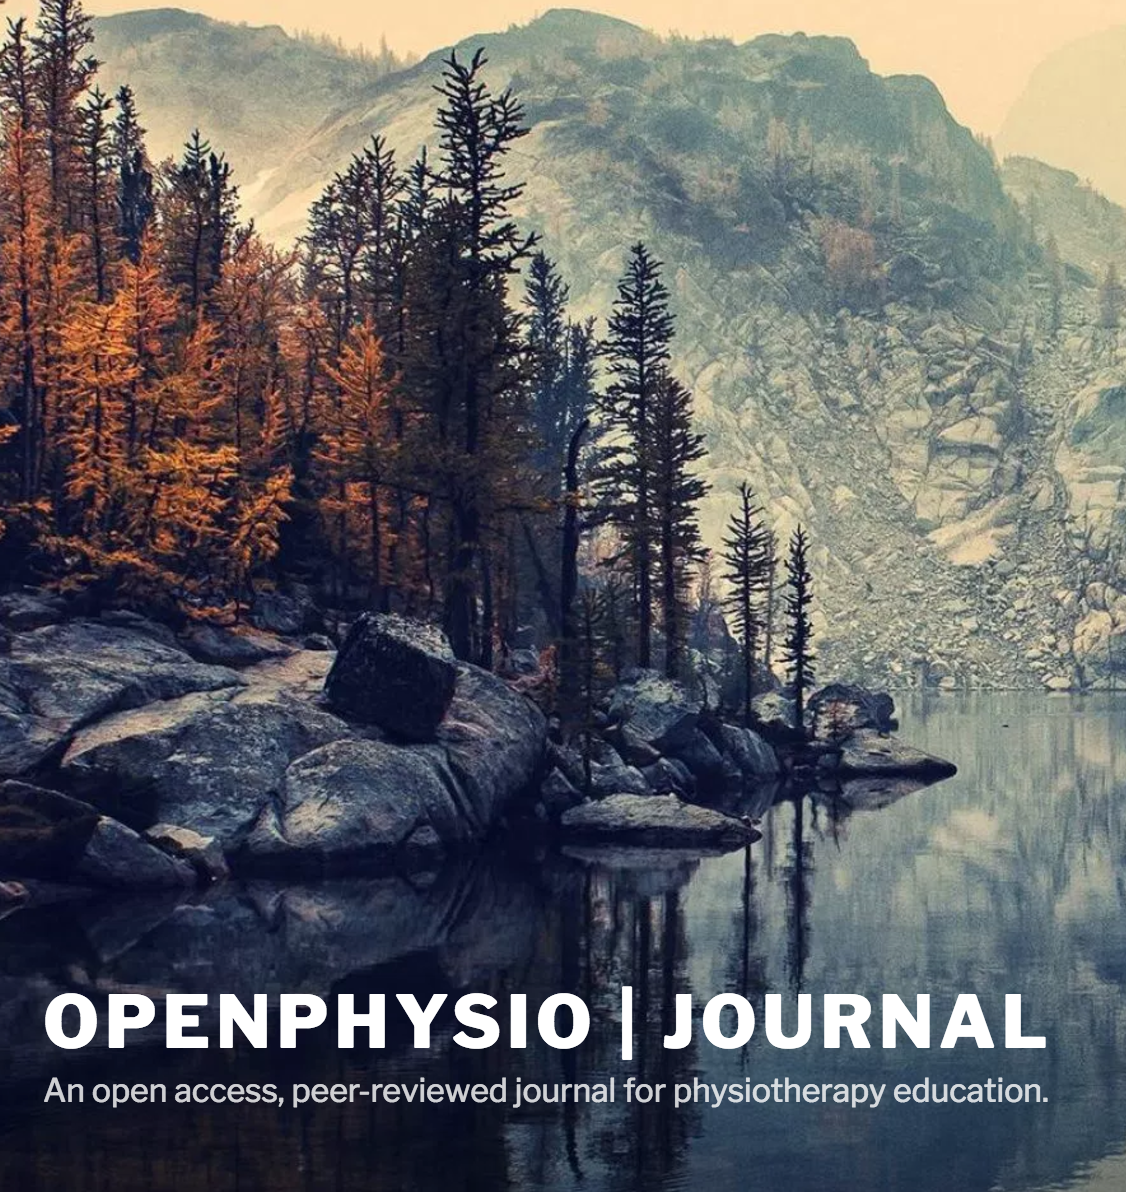 OpenPhysio journal - a shift away from traditional publication models